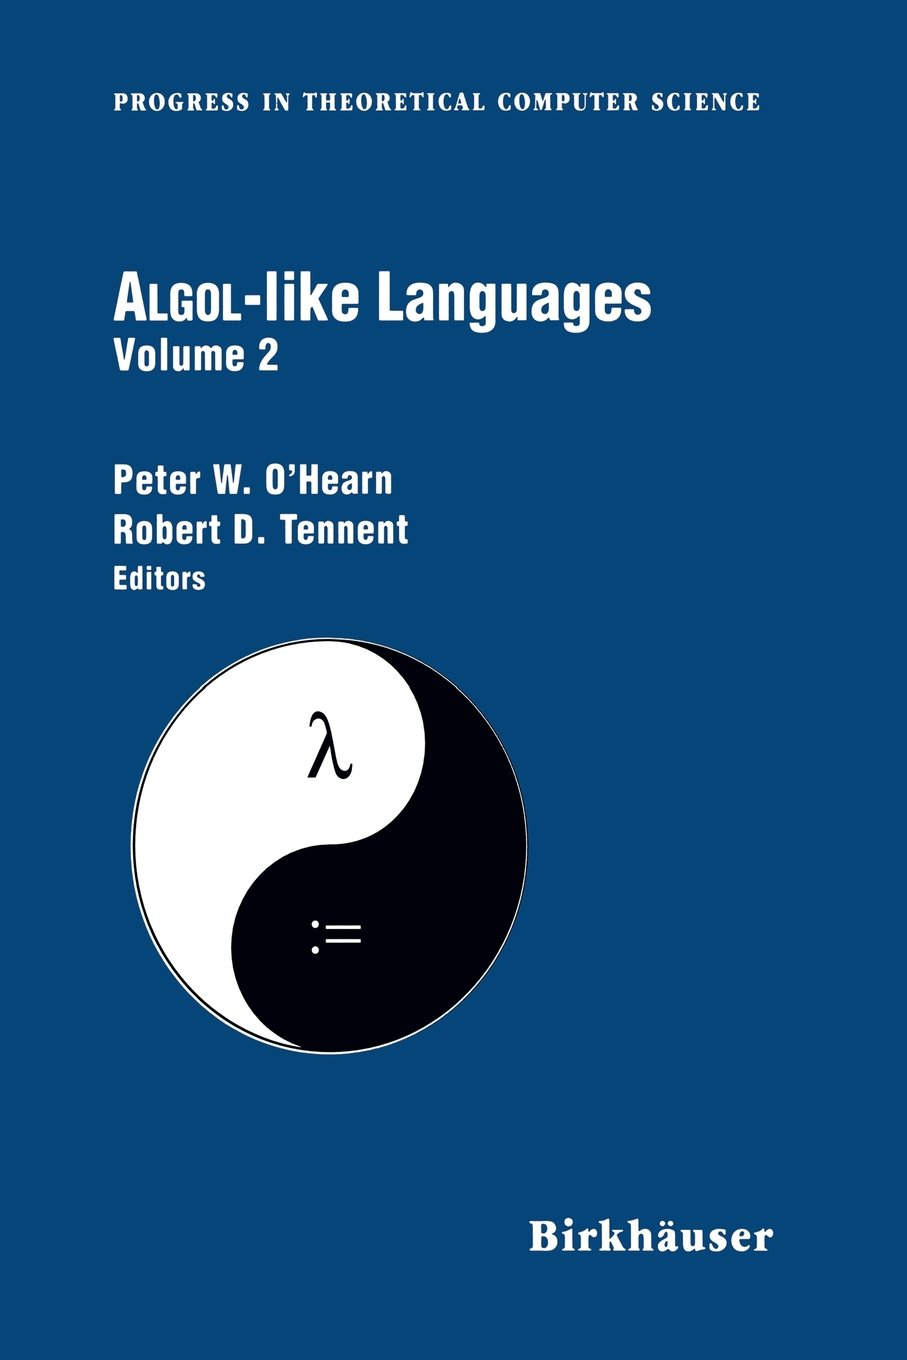 Algol-like Languages (Progress in Theoretical Computer Science) 2-volume set by Birkhäuser